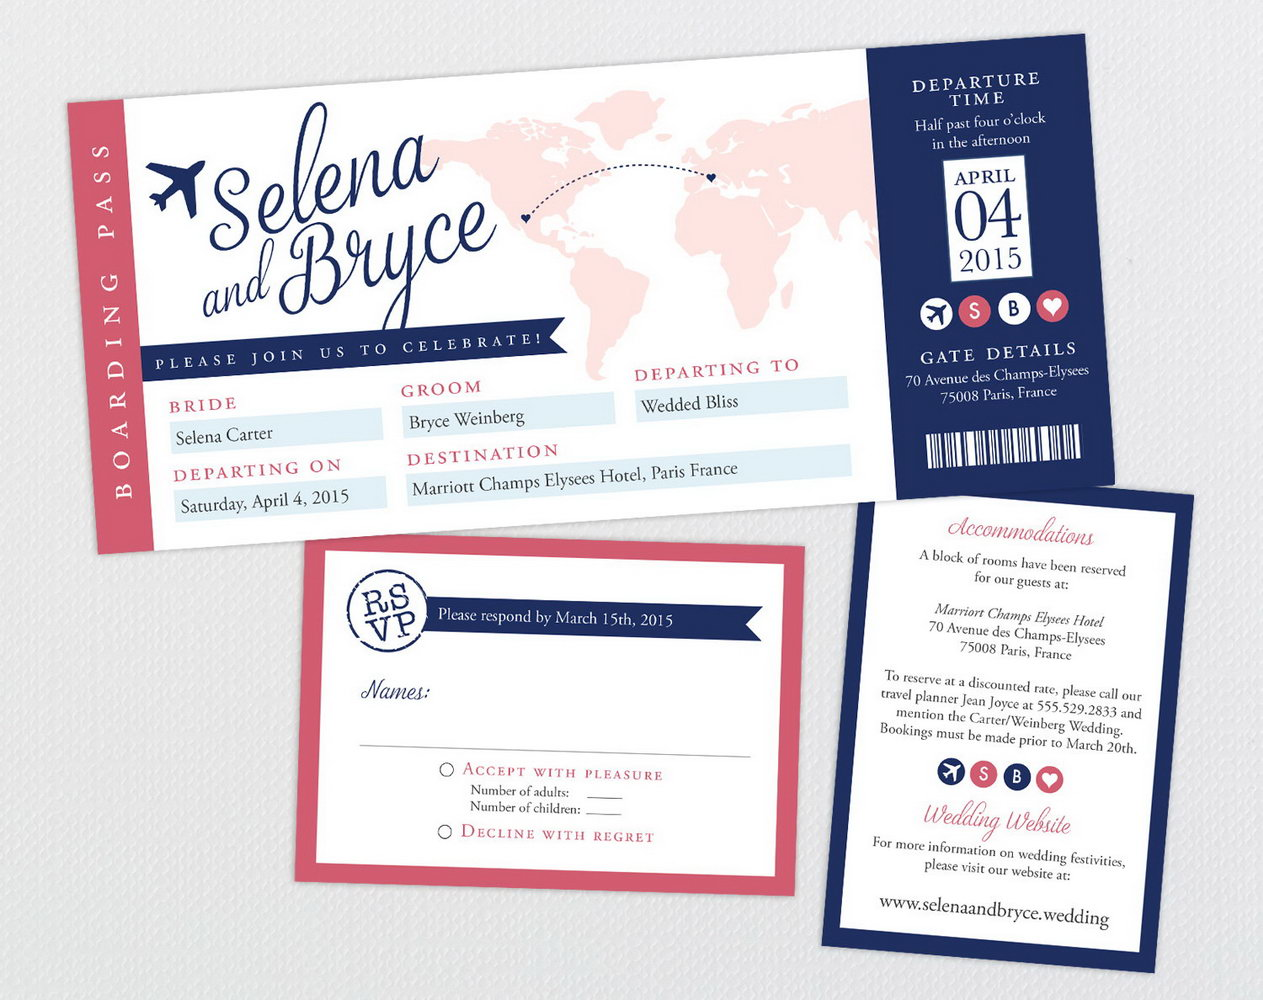 Customizable Boarding Pass Invitation Template